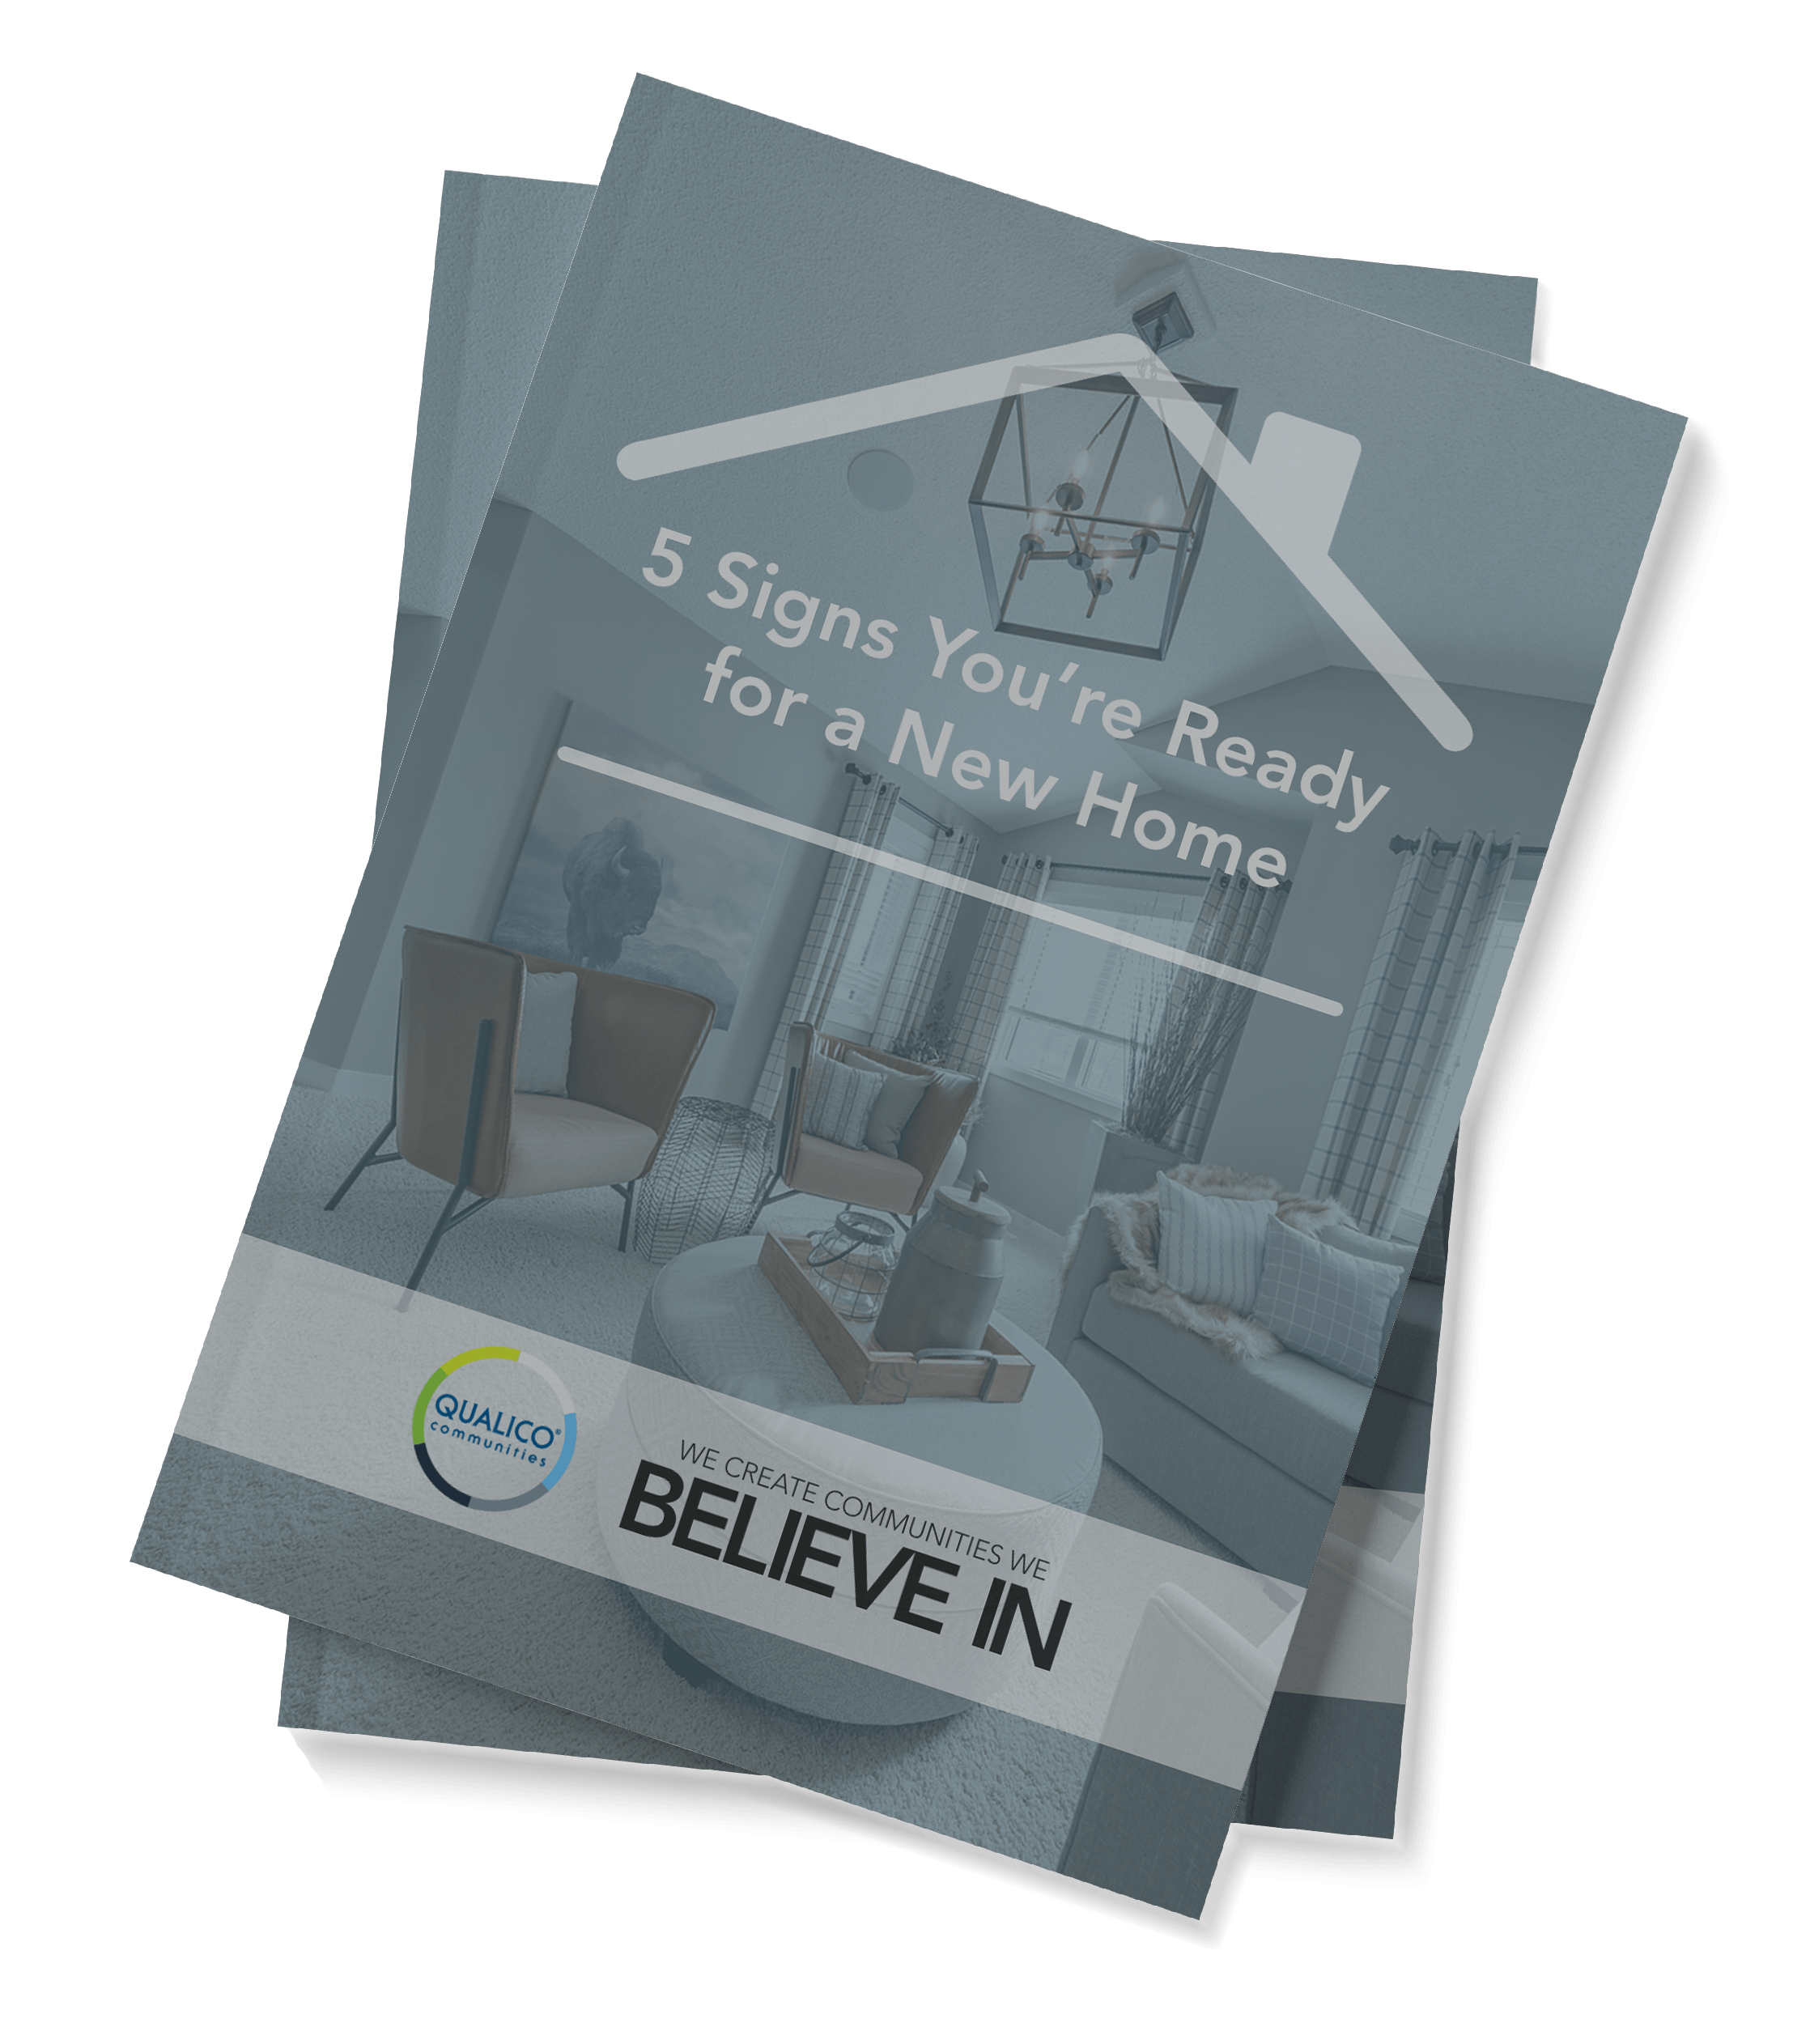 5 signs youre ready new home cover image